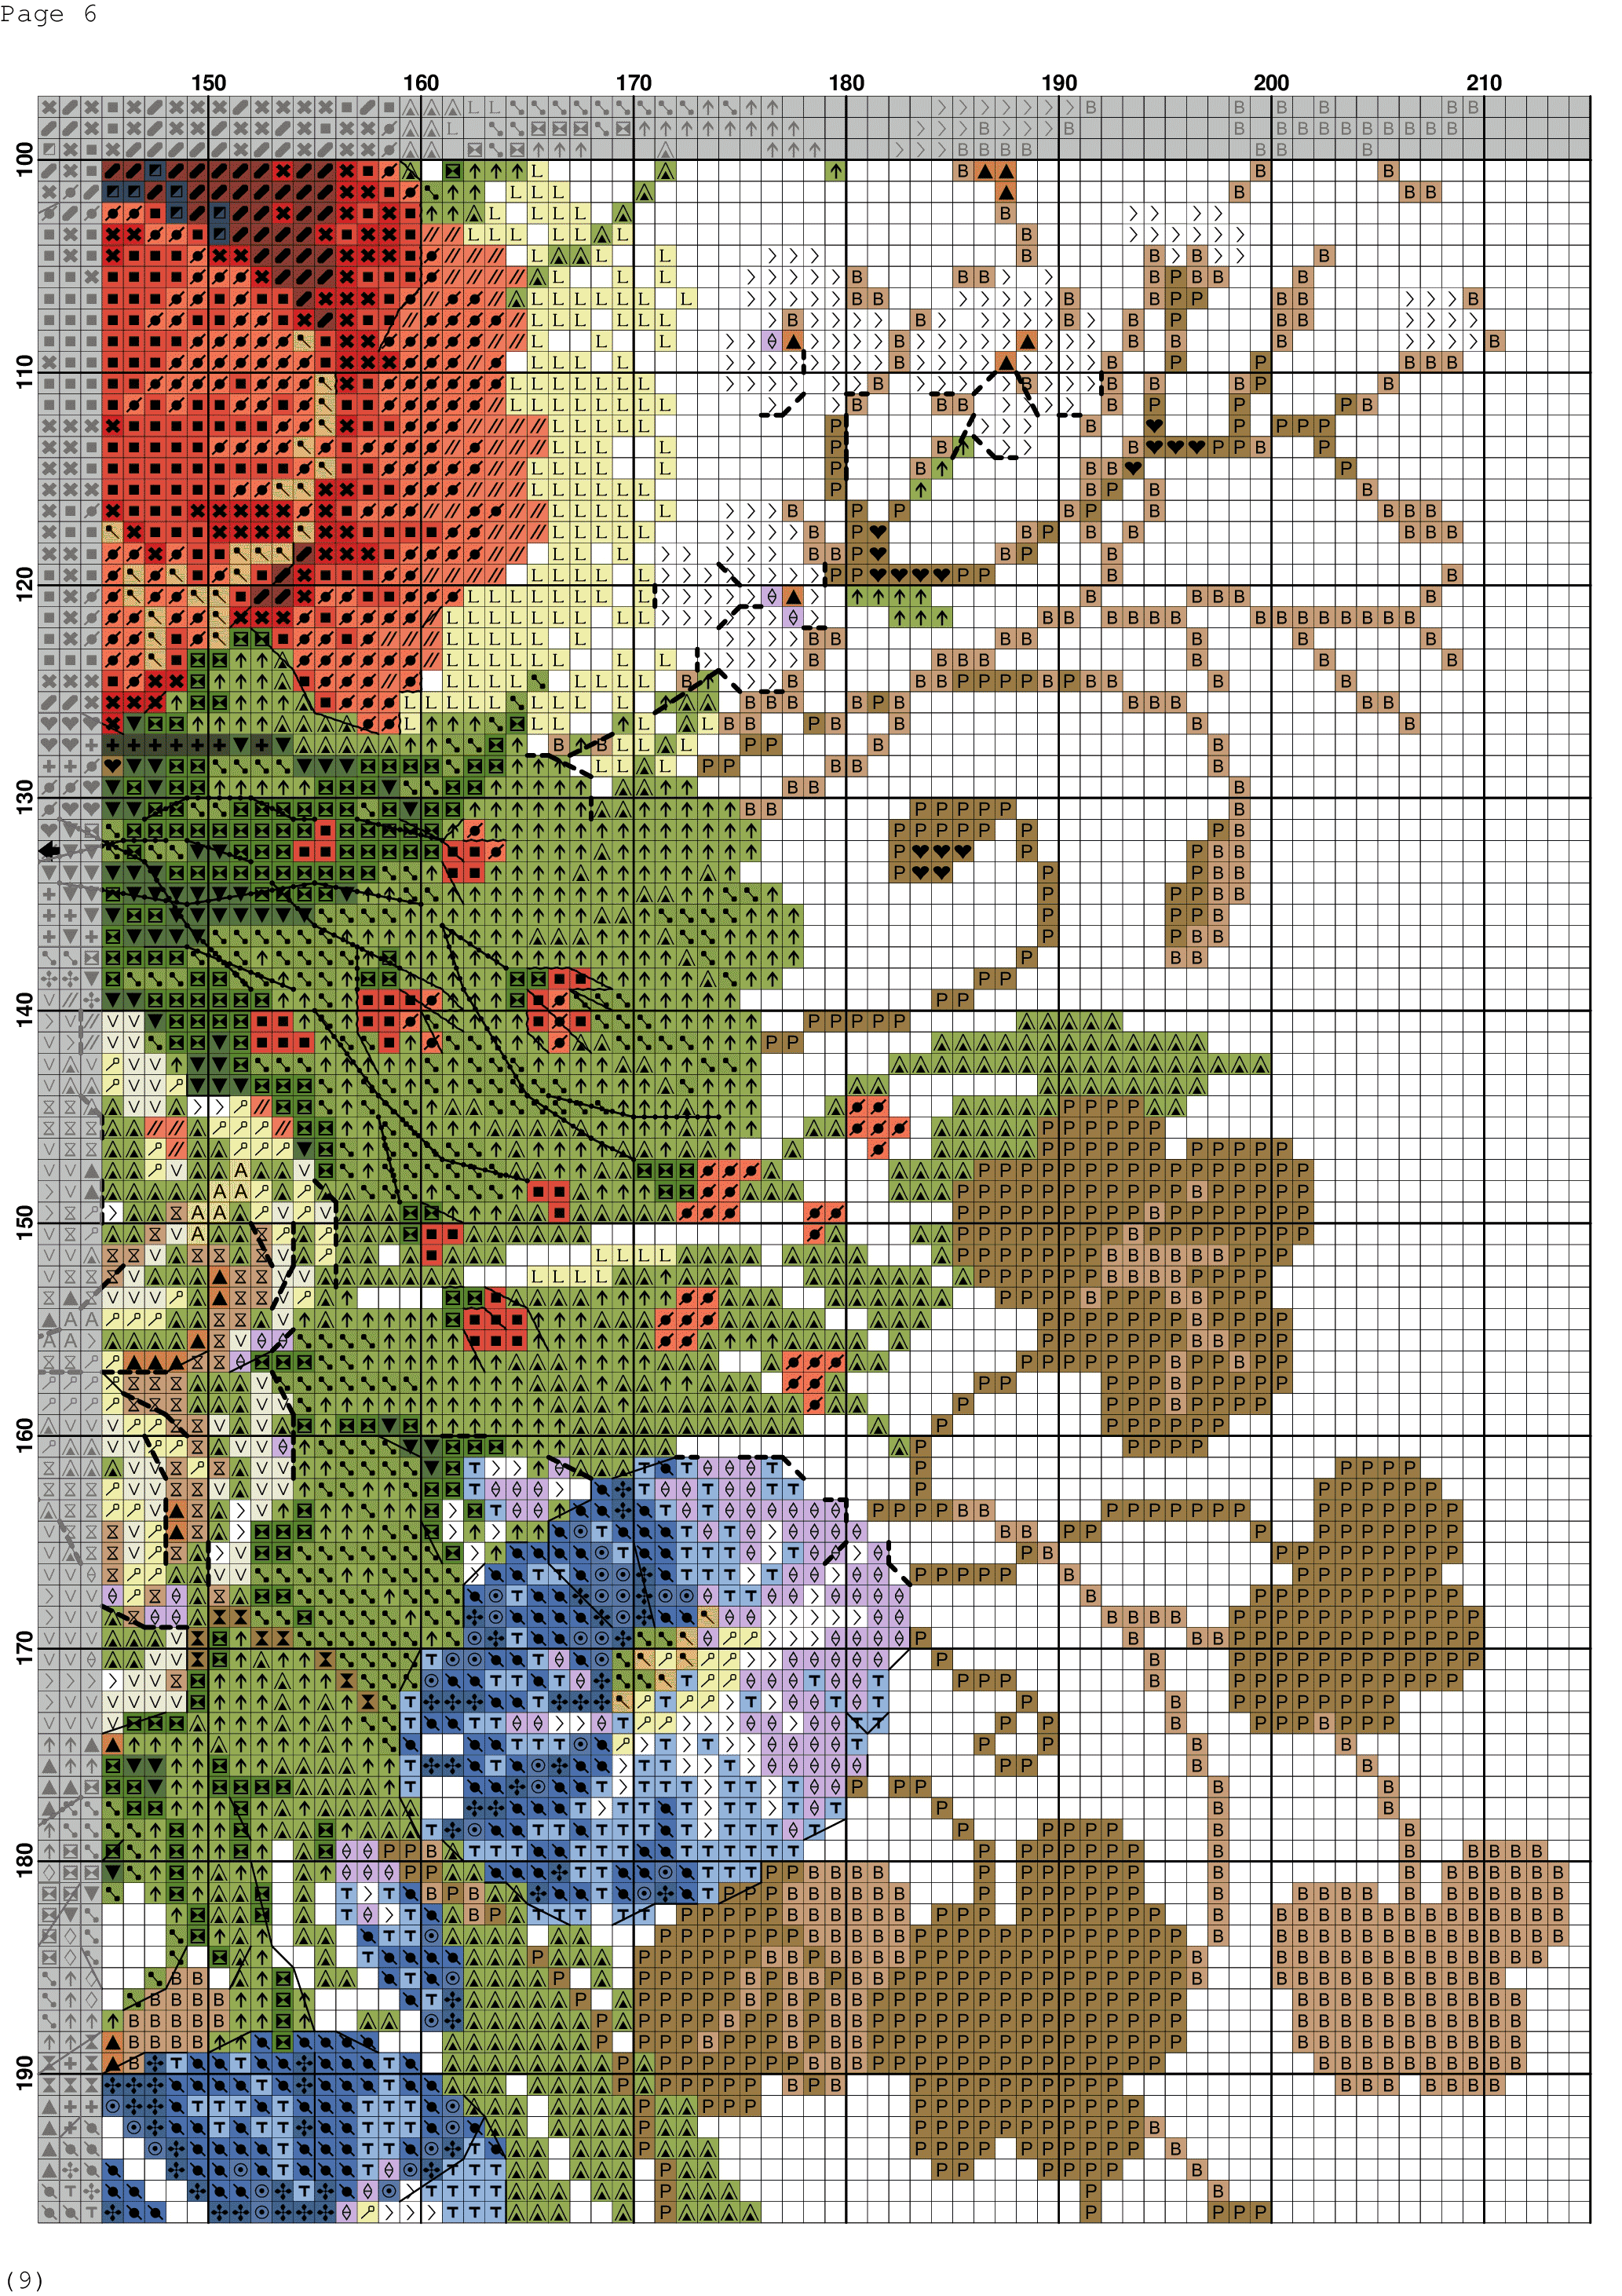 wildflowers-cross-stitch-patterns-(7)